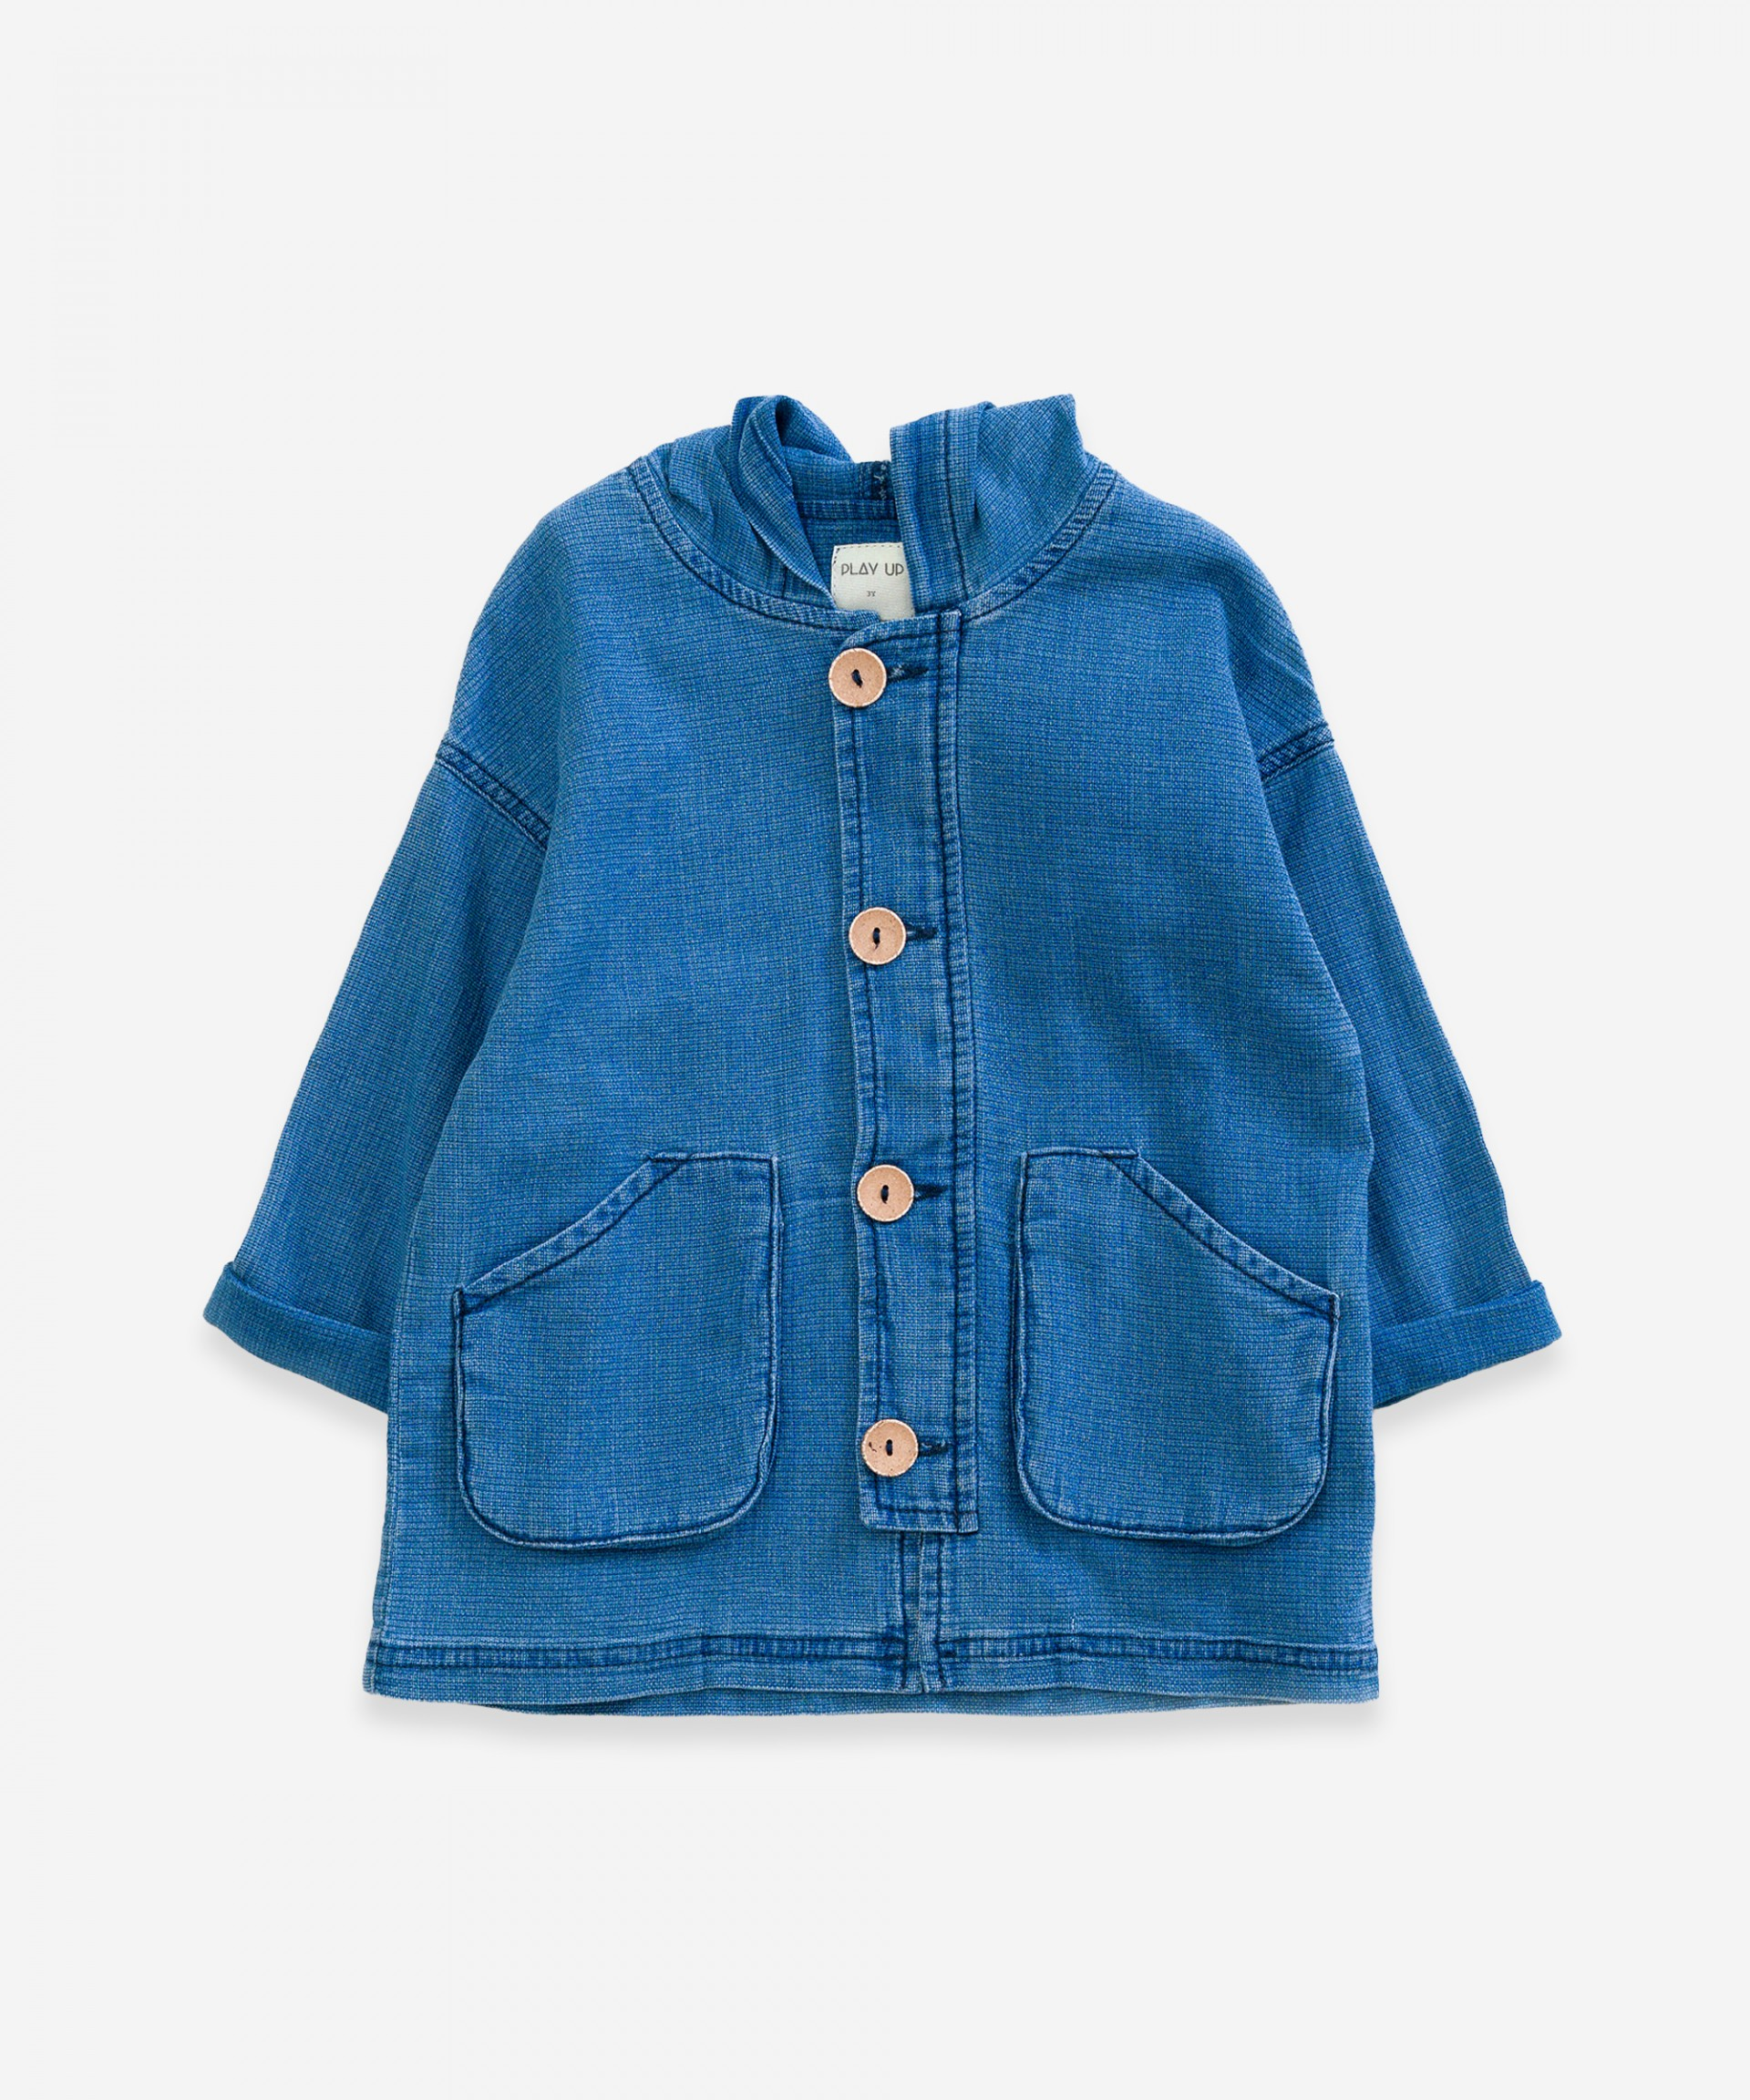 Denim jacket with pockets | Weaving